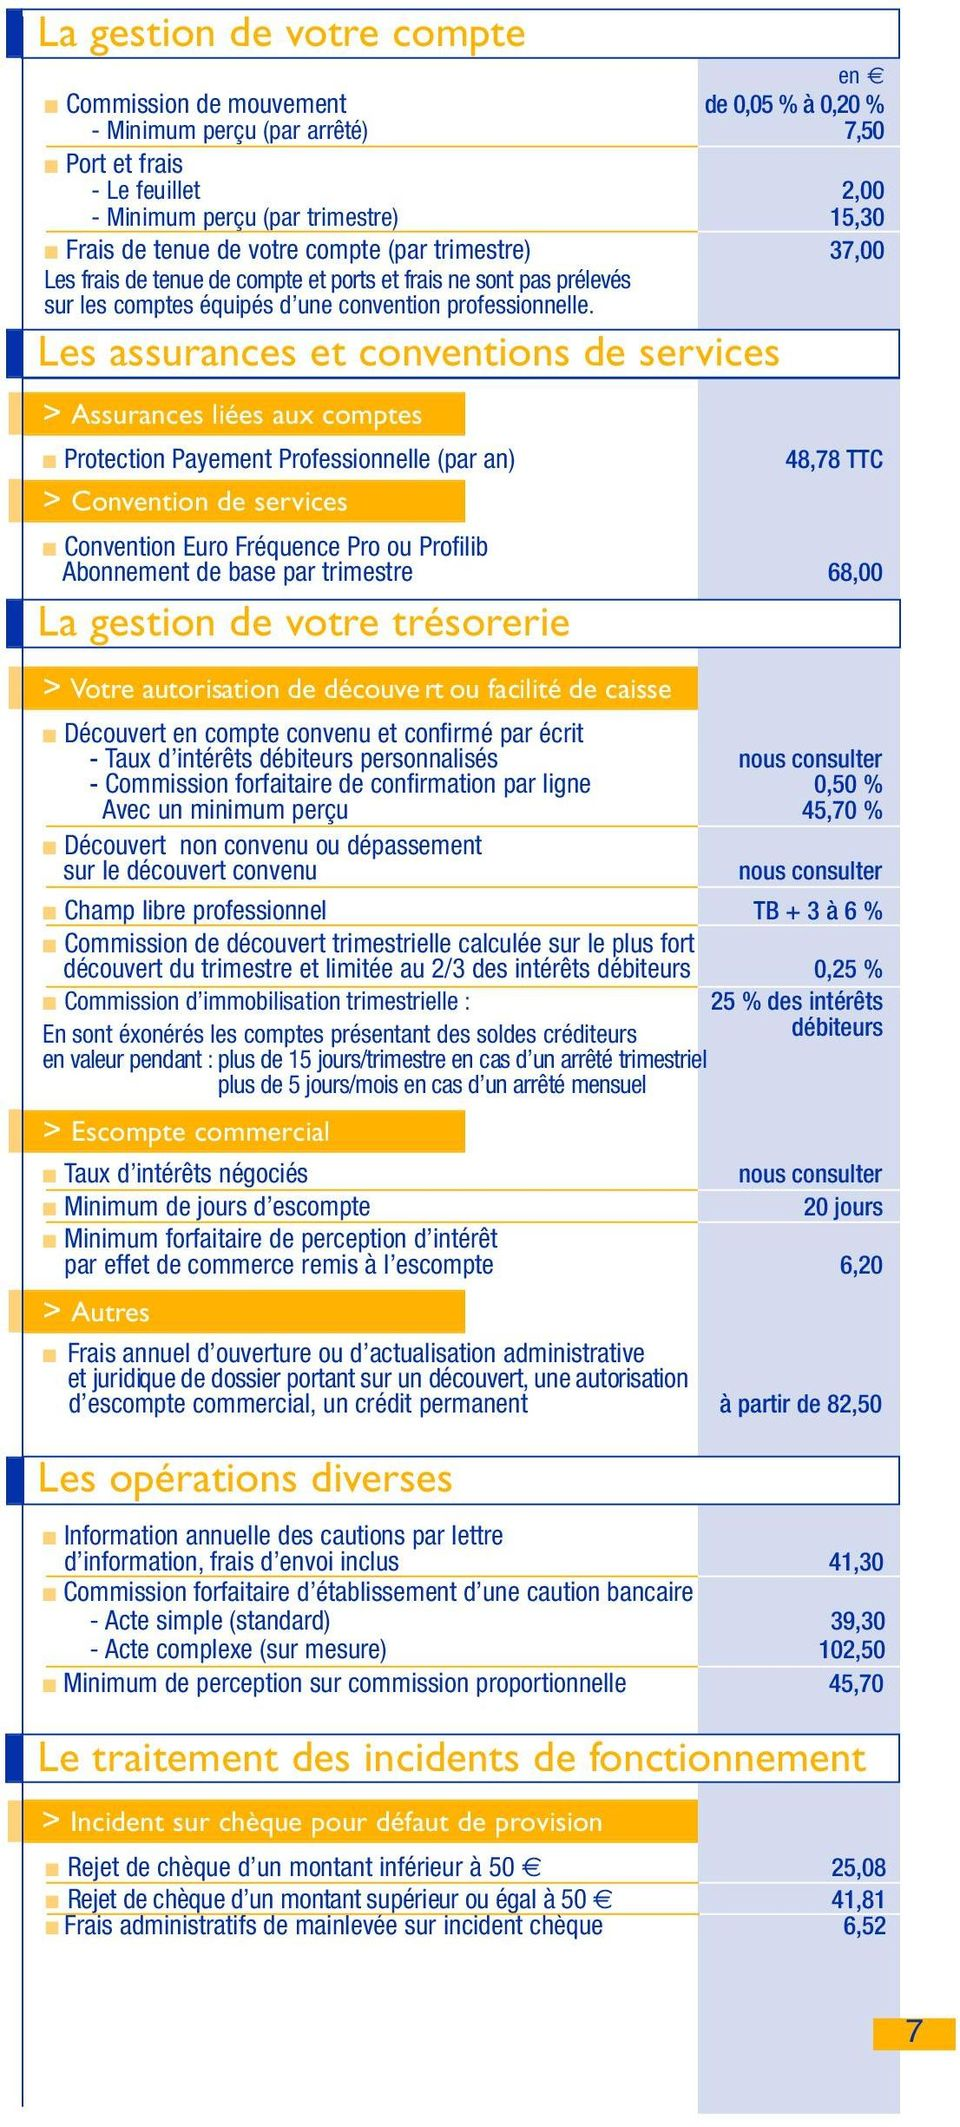 Les assurances et conventions de services > Assurances liées aux comptes Protection Payement Professionnelle (par an) > Convention de services 48,78 TTC Convention Euro Fréquence Pro ou Profilib